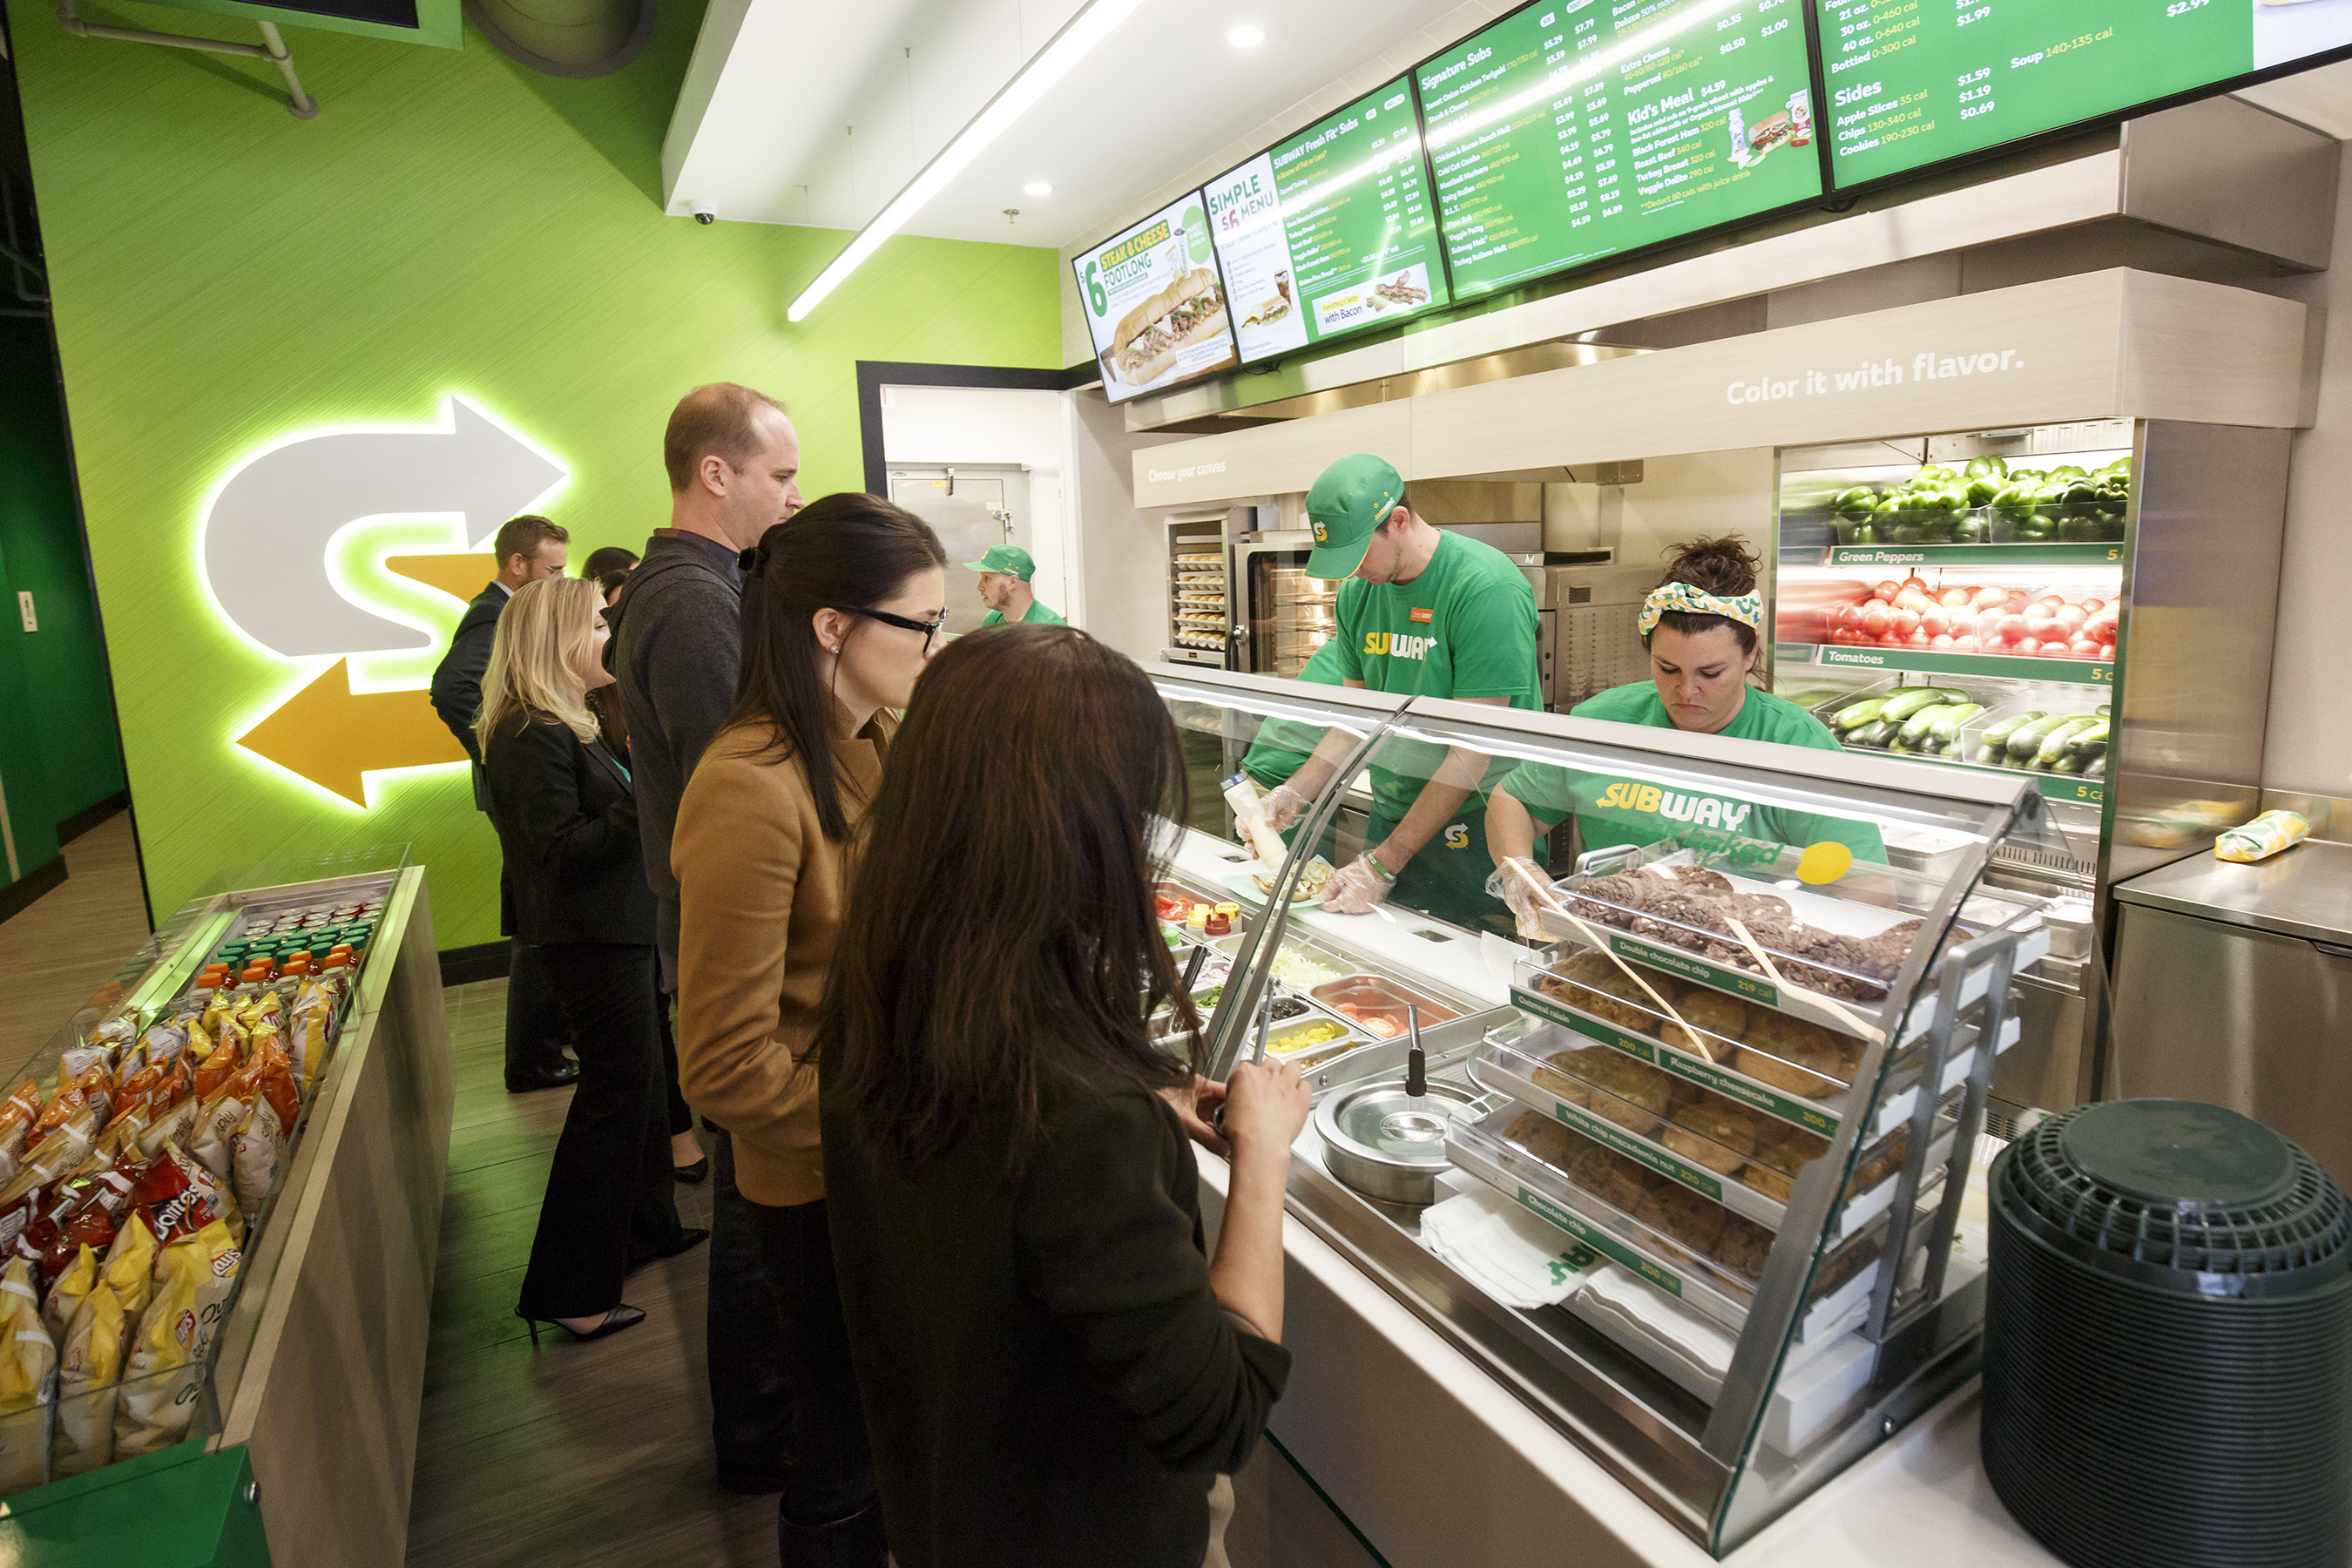 The new restaurant design is the next phase of Subway's evolution.